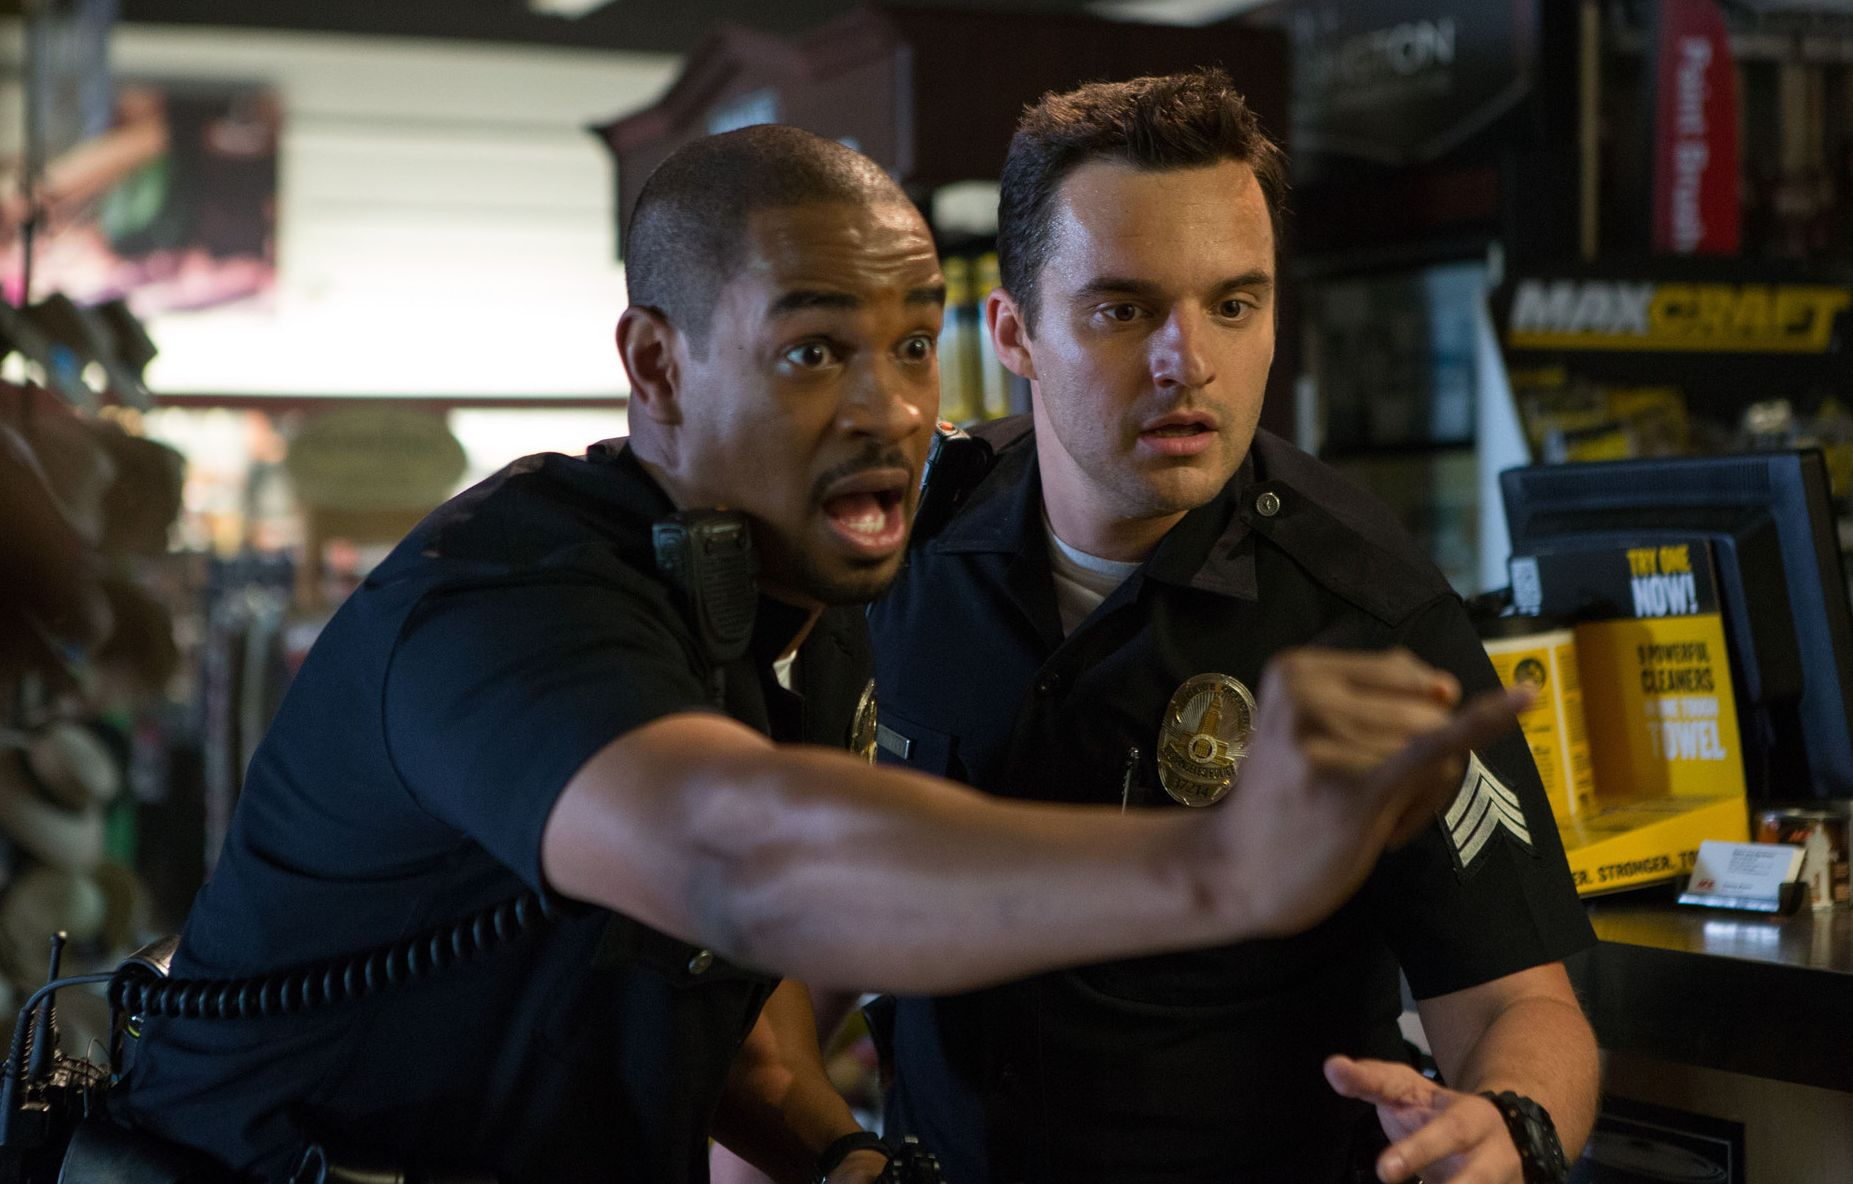 Damon Wayans Jr. pinky swear. Let's Be Cops